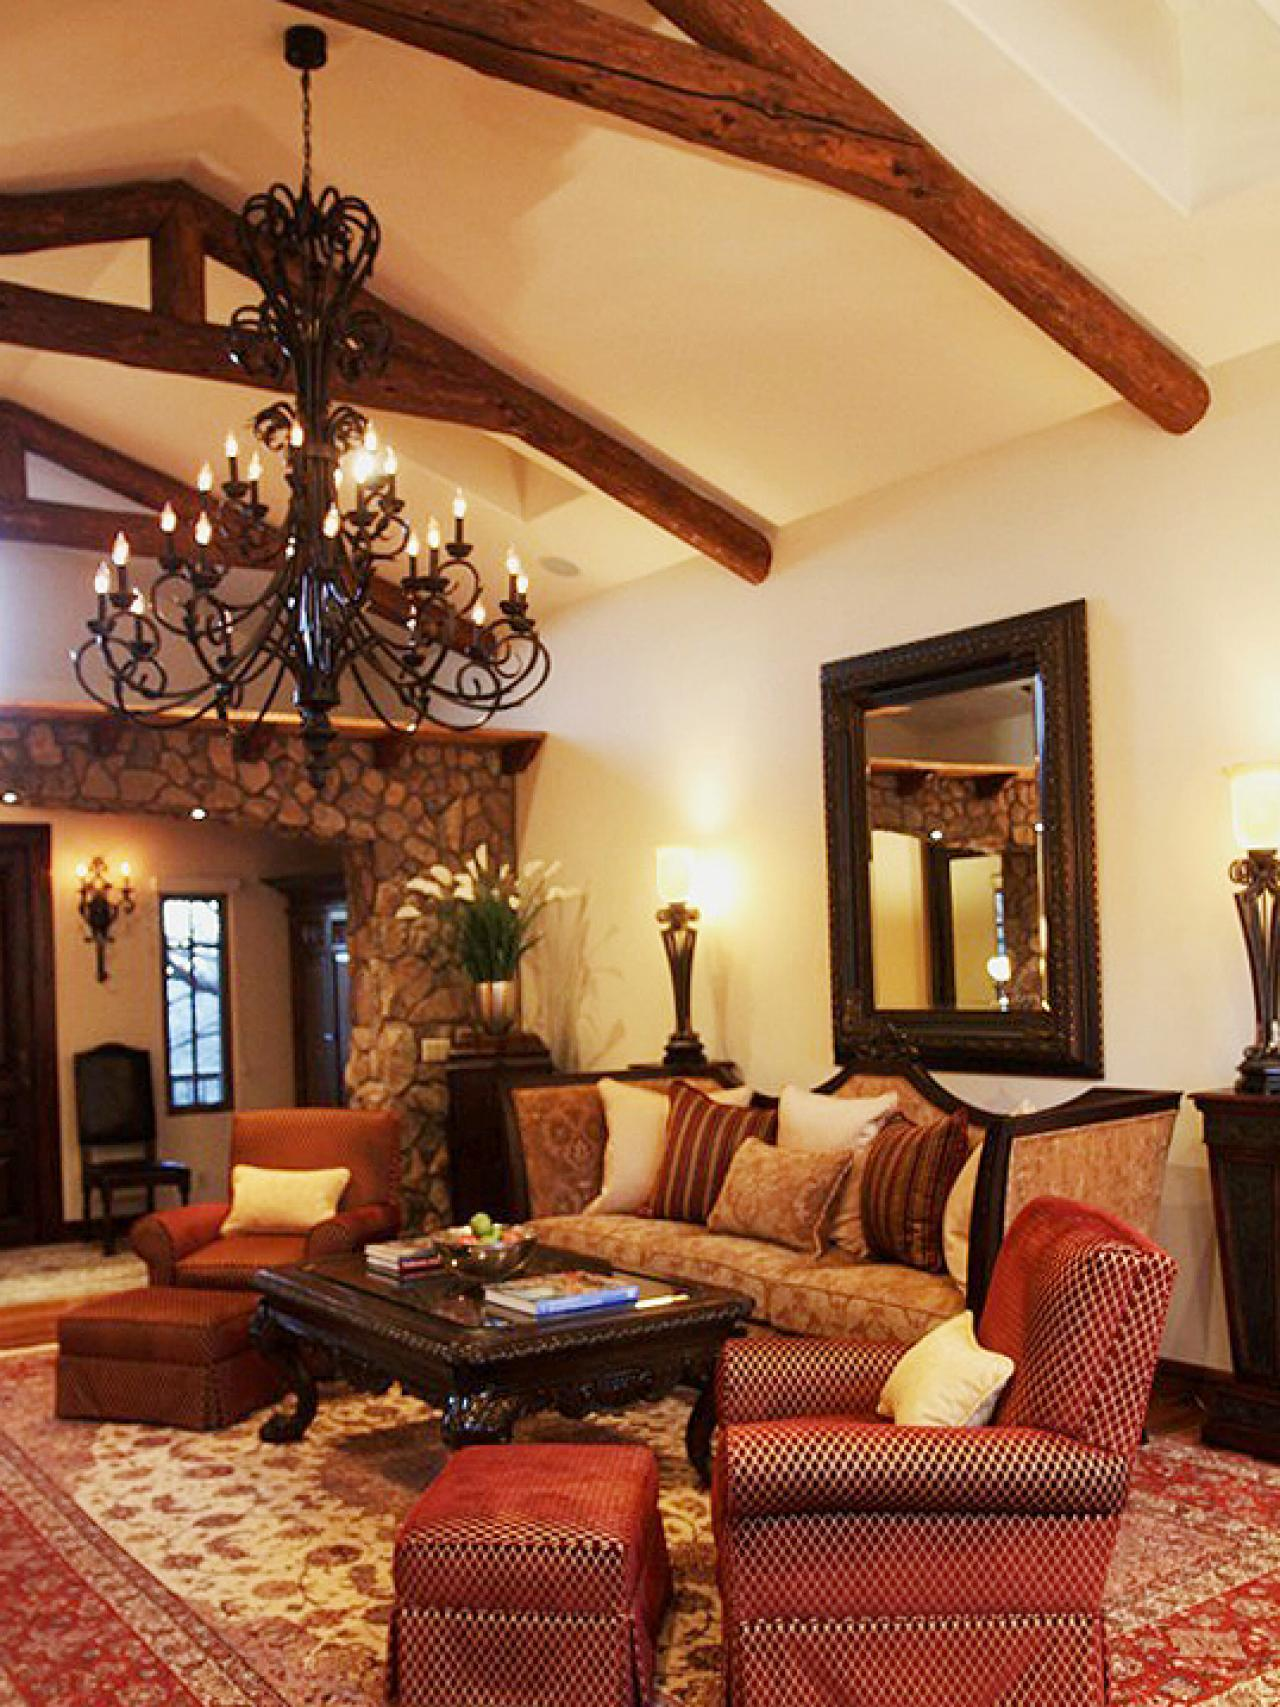 Ordinaire Elegant Spanish Living Room With Exposing Beams Classic Chandelier Old Style  Of Sofas And Big Mirror